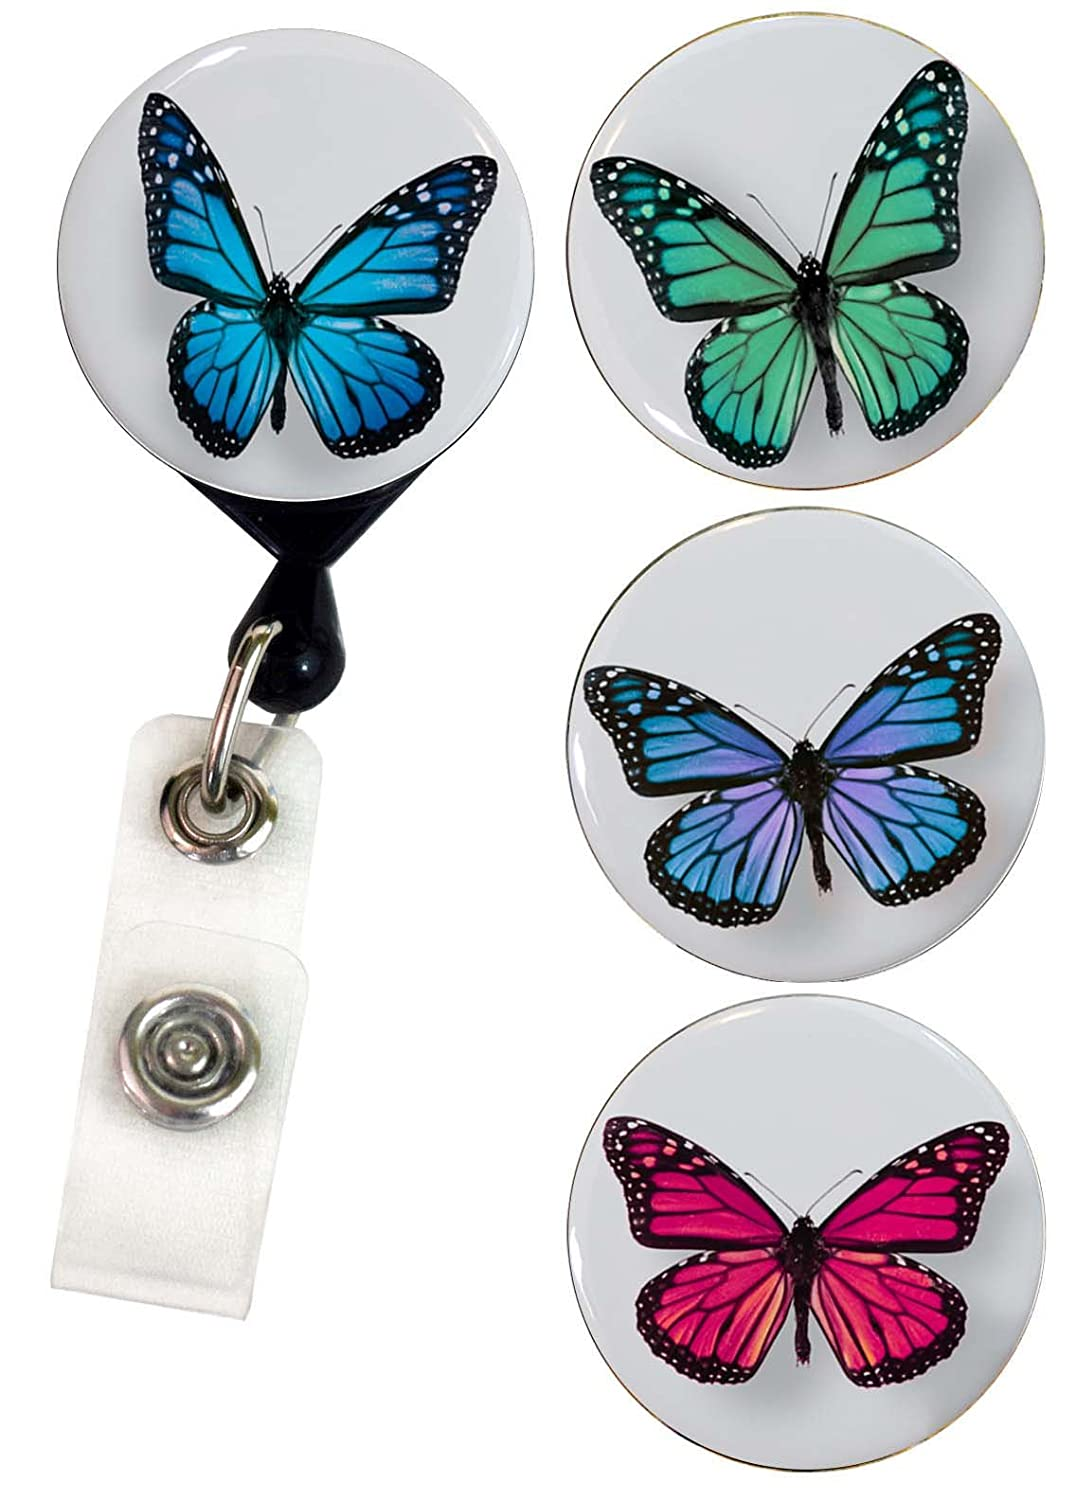 Buttonsmith Butterfly Retractable Tinker Reel Badge Reel with Rotating Alligator Clip and Swappable Tinker Tops - Made in the USA, 1 Year Warranty